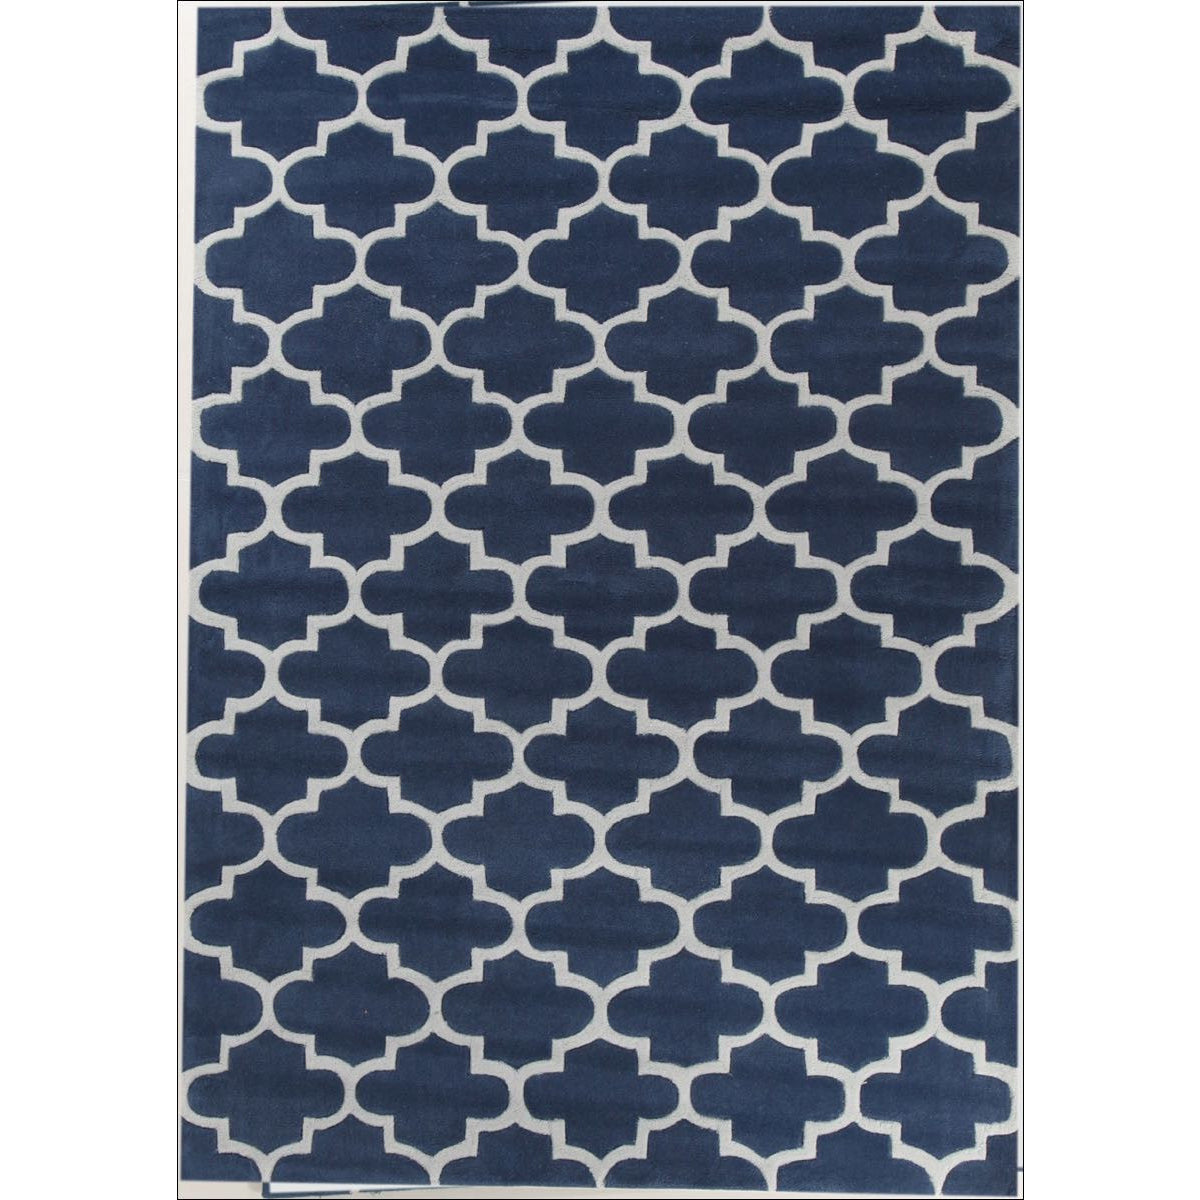 navy rugs viscose amara images collections blue distressed rug side miss hk valdez